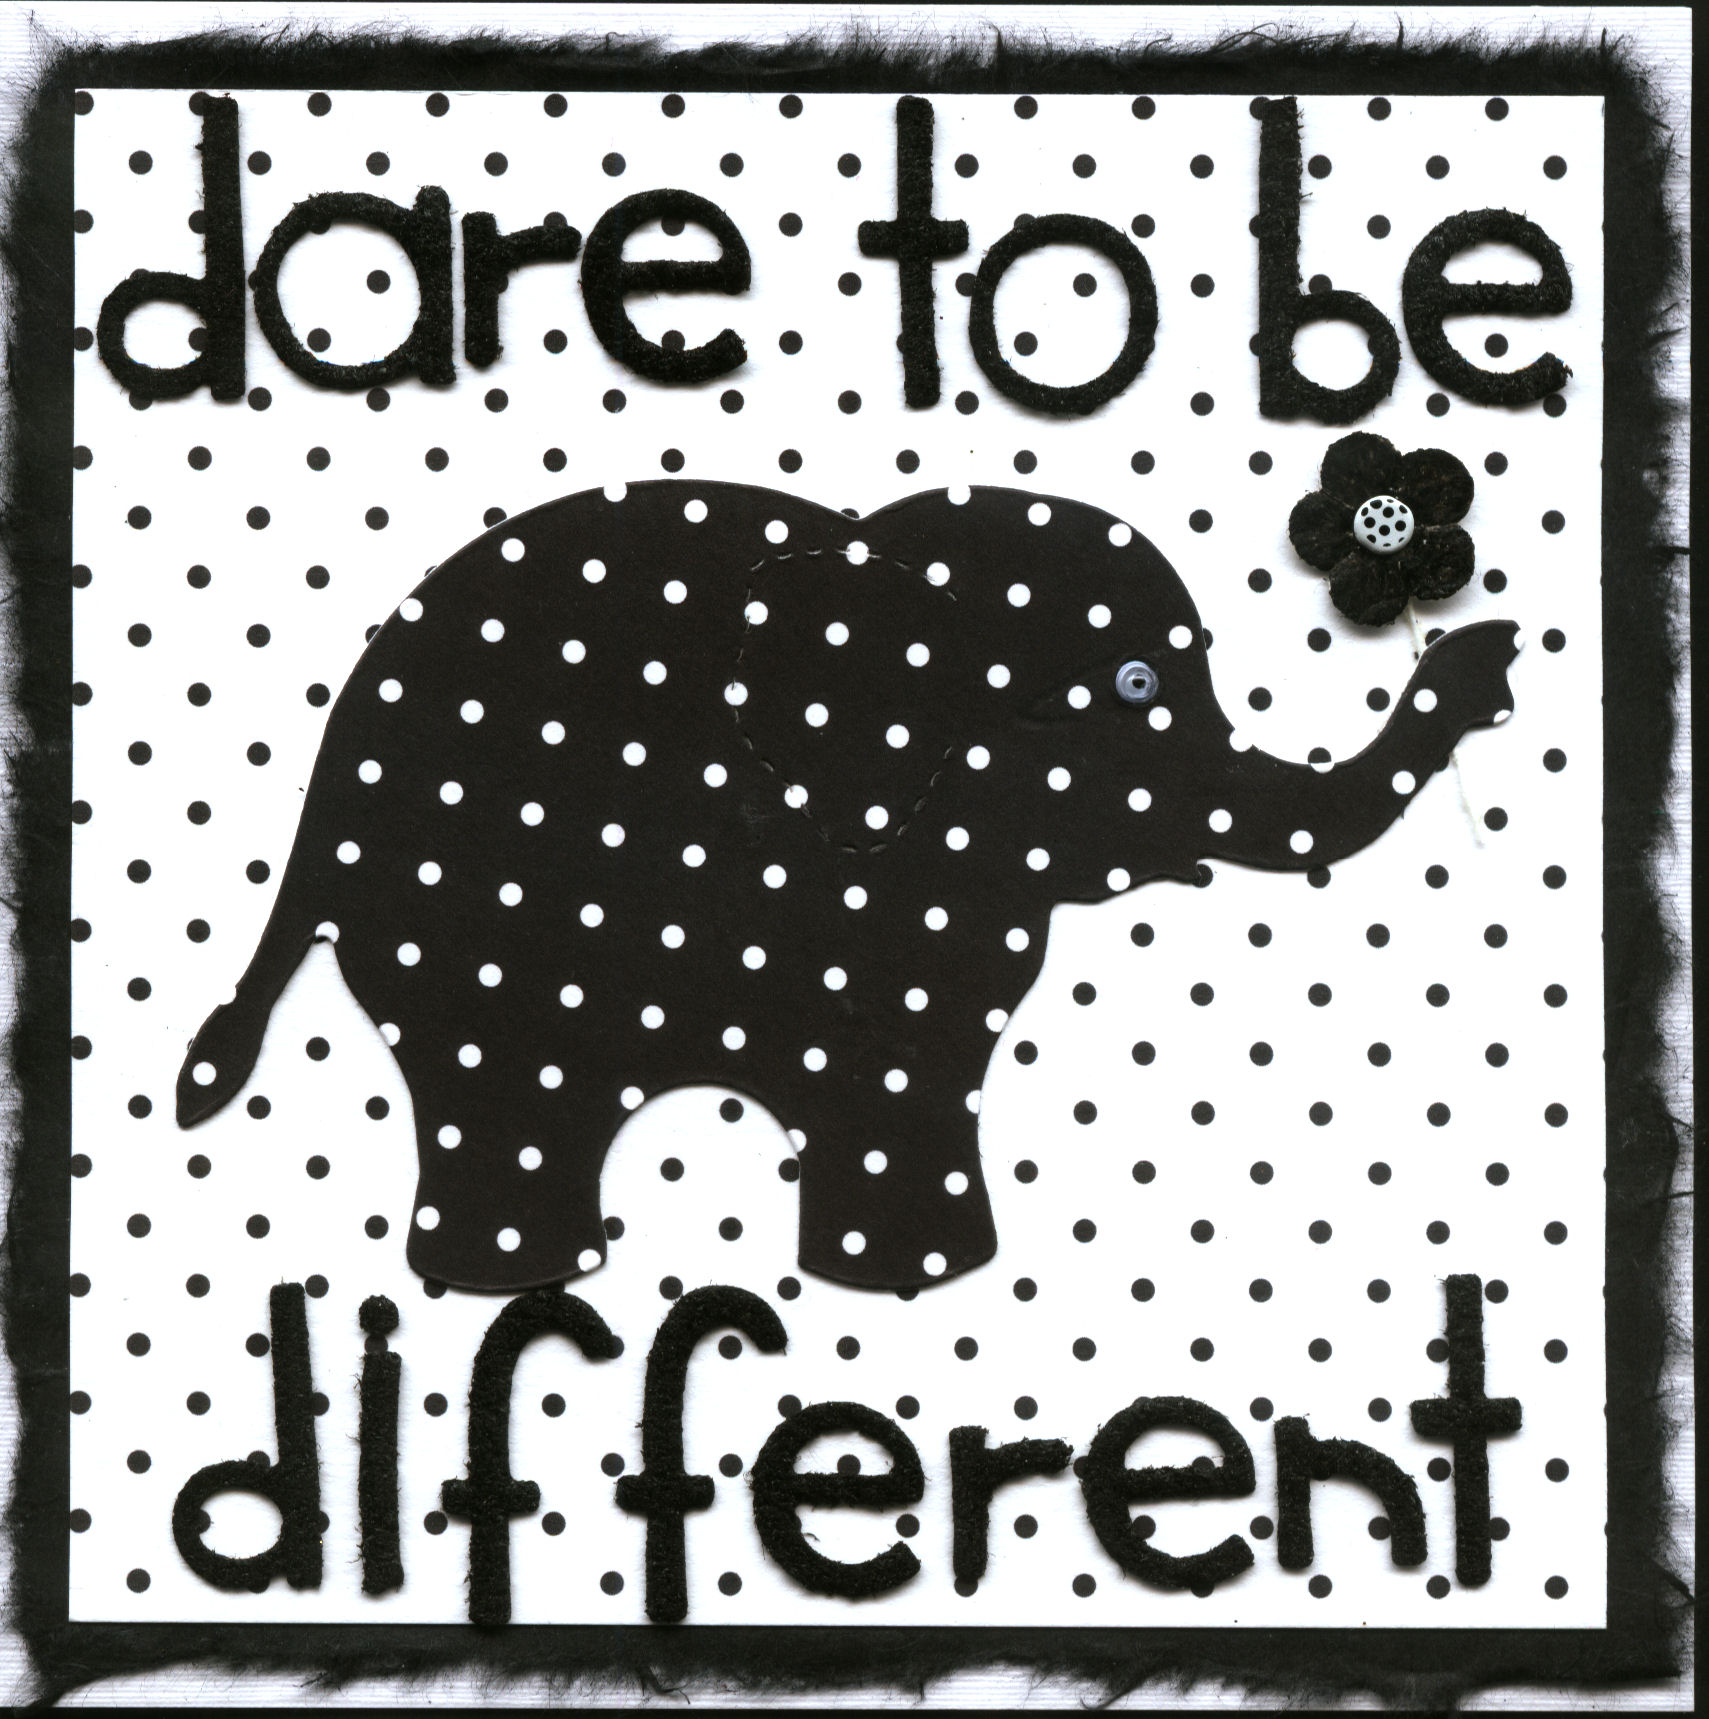 Avoiding Mediocrity: Do You Dare to Be Different?